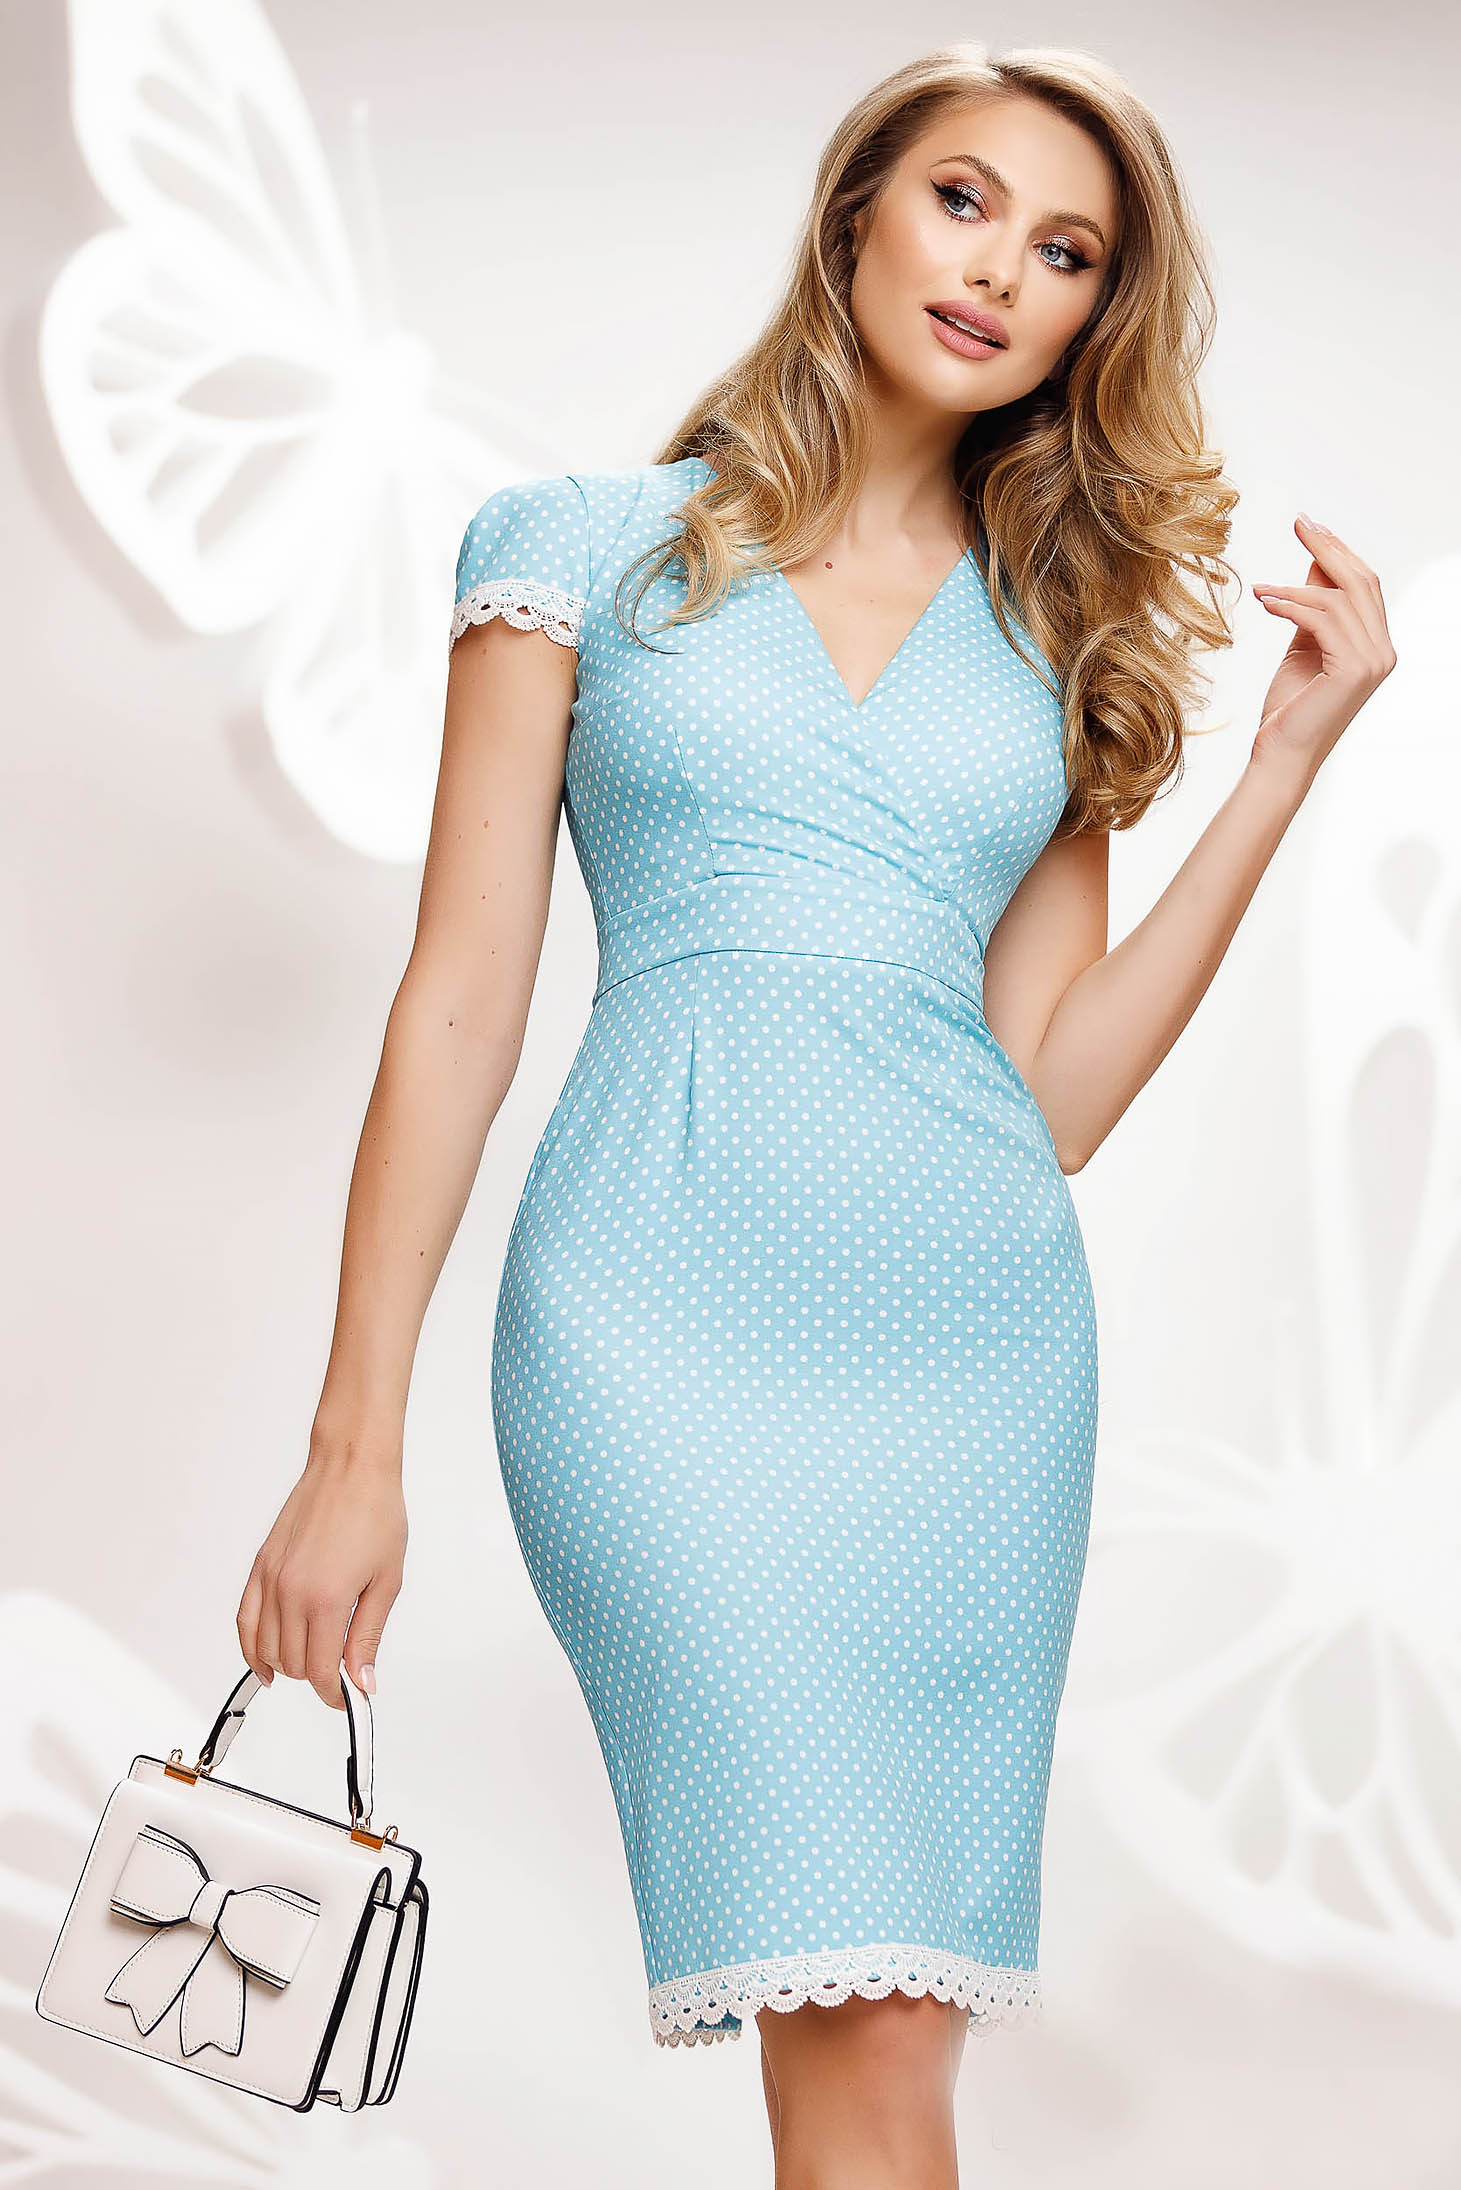 Lightblue dress midi pencil with lace details dots print from elastic fabric